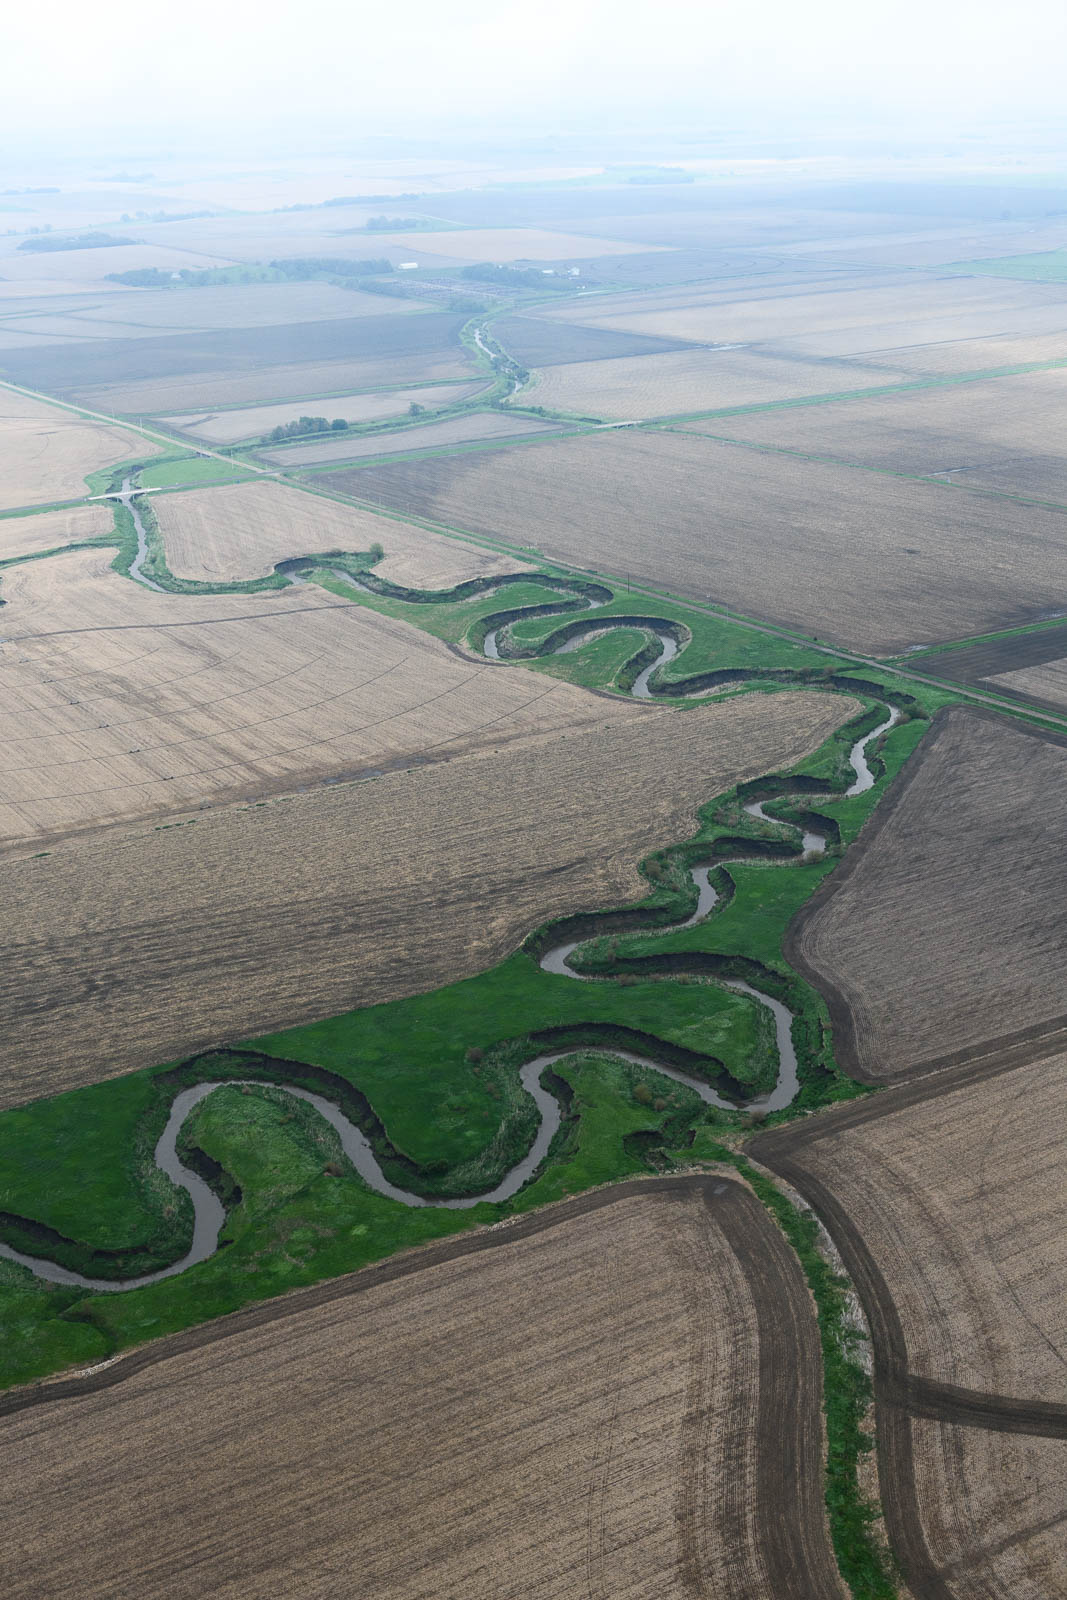 Meandering rivers of Wisner, Nebraska